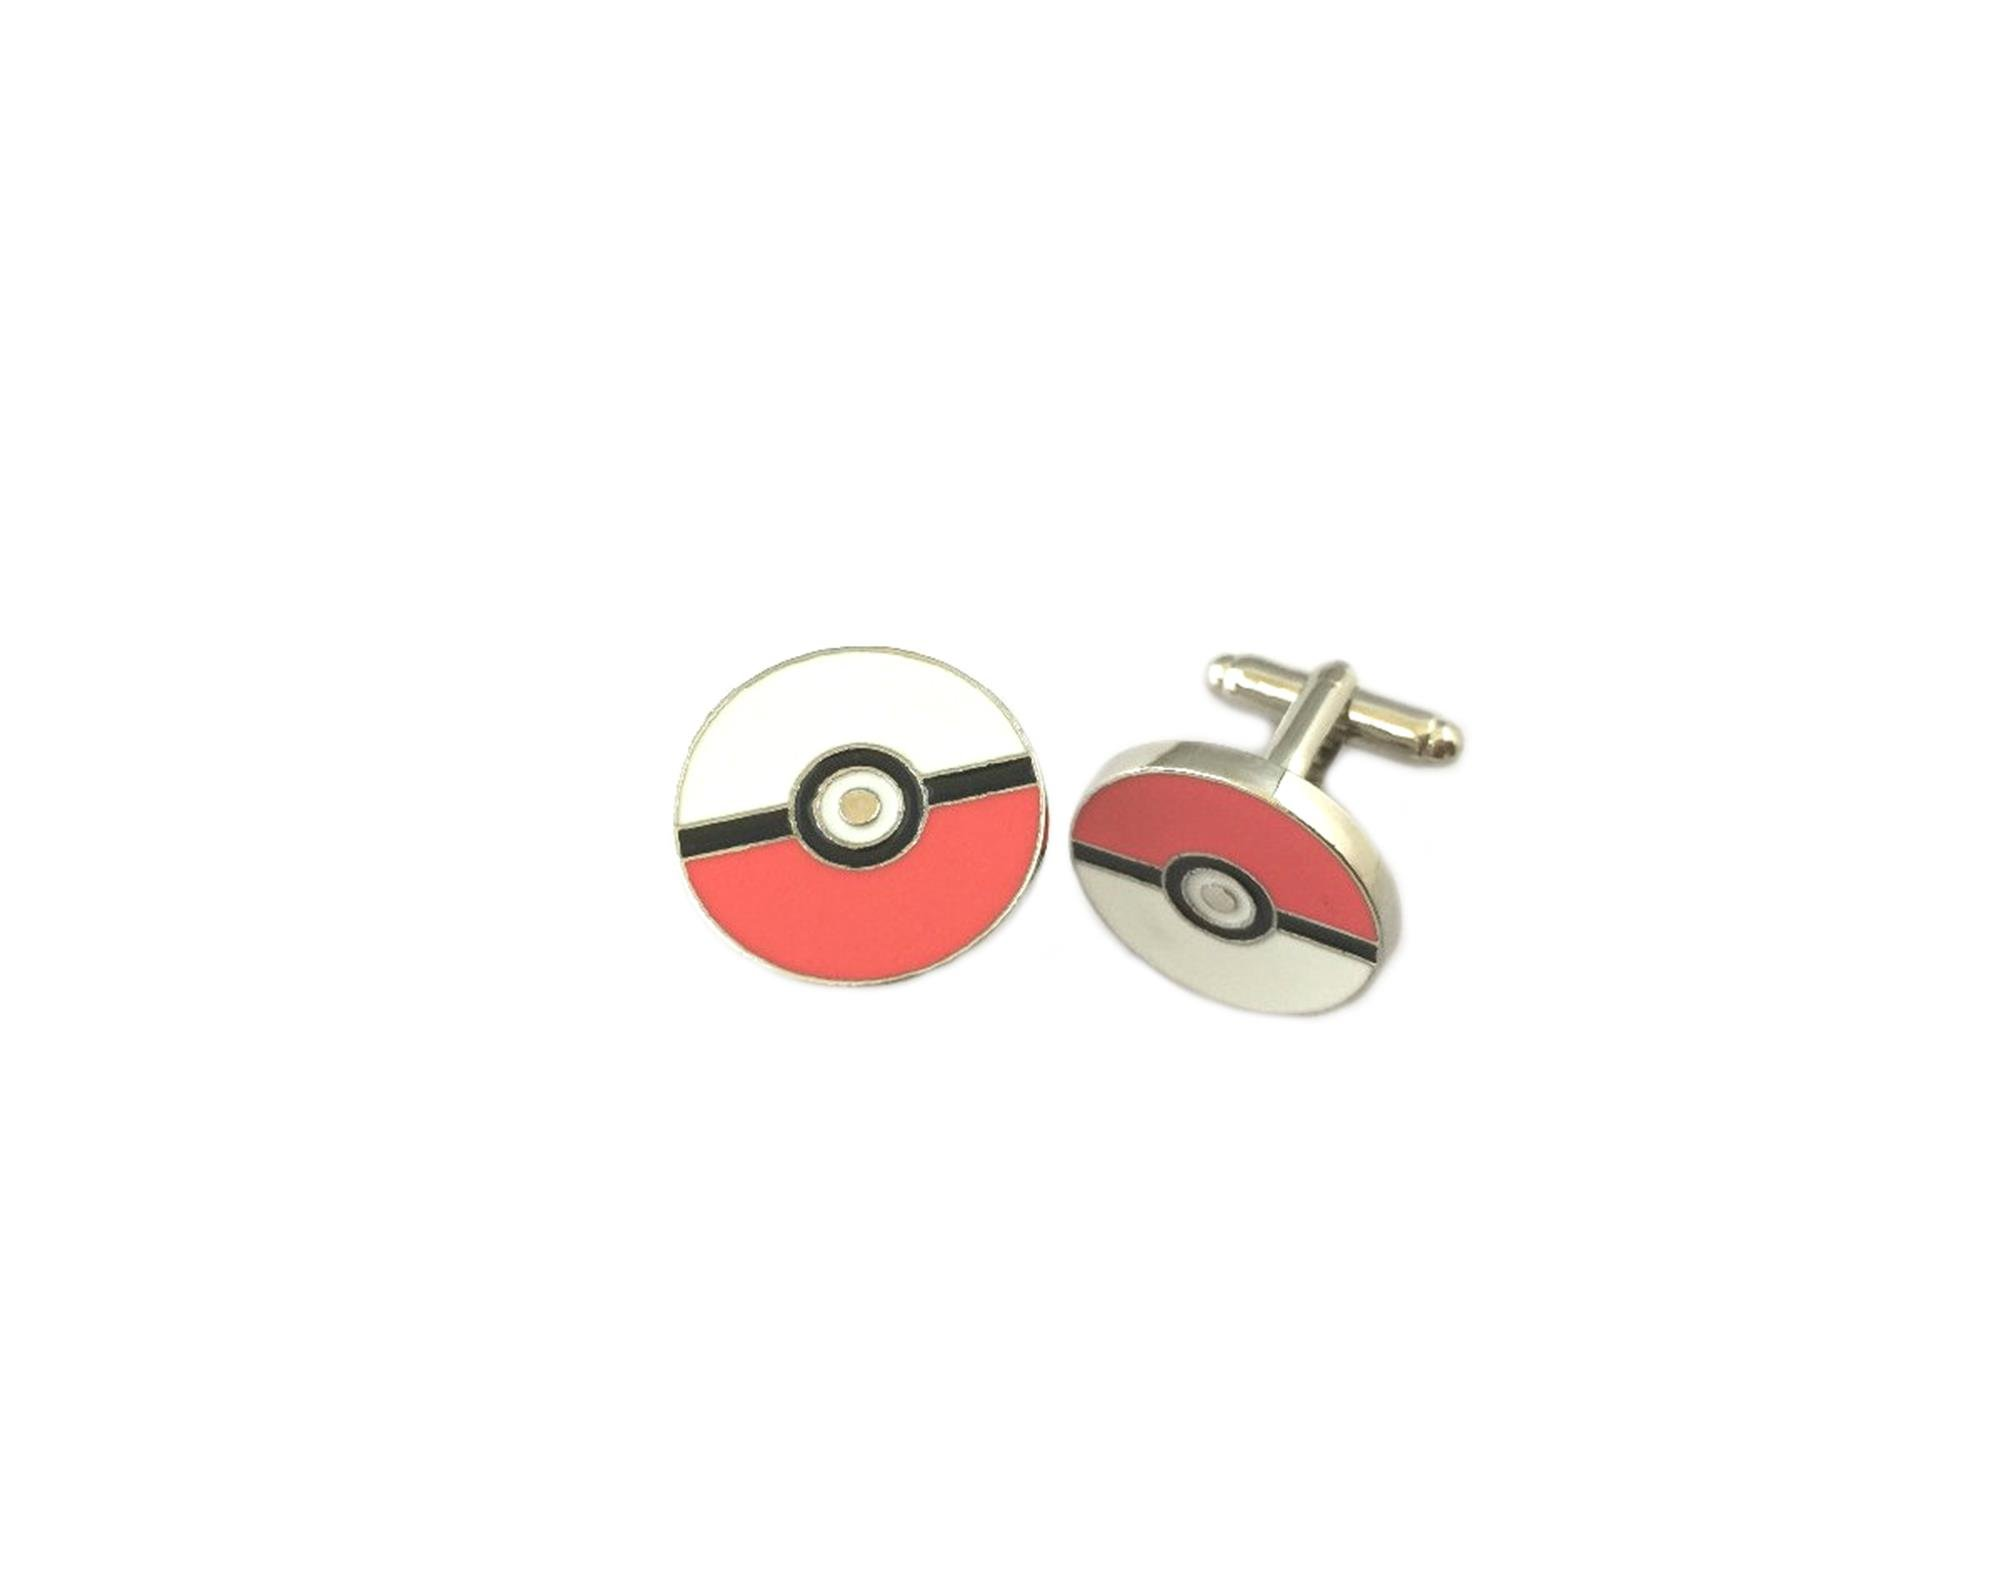 Athena Brand Game Cartoon Pokemon Pokeball Cufflinks In Gift Box